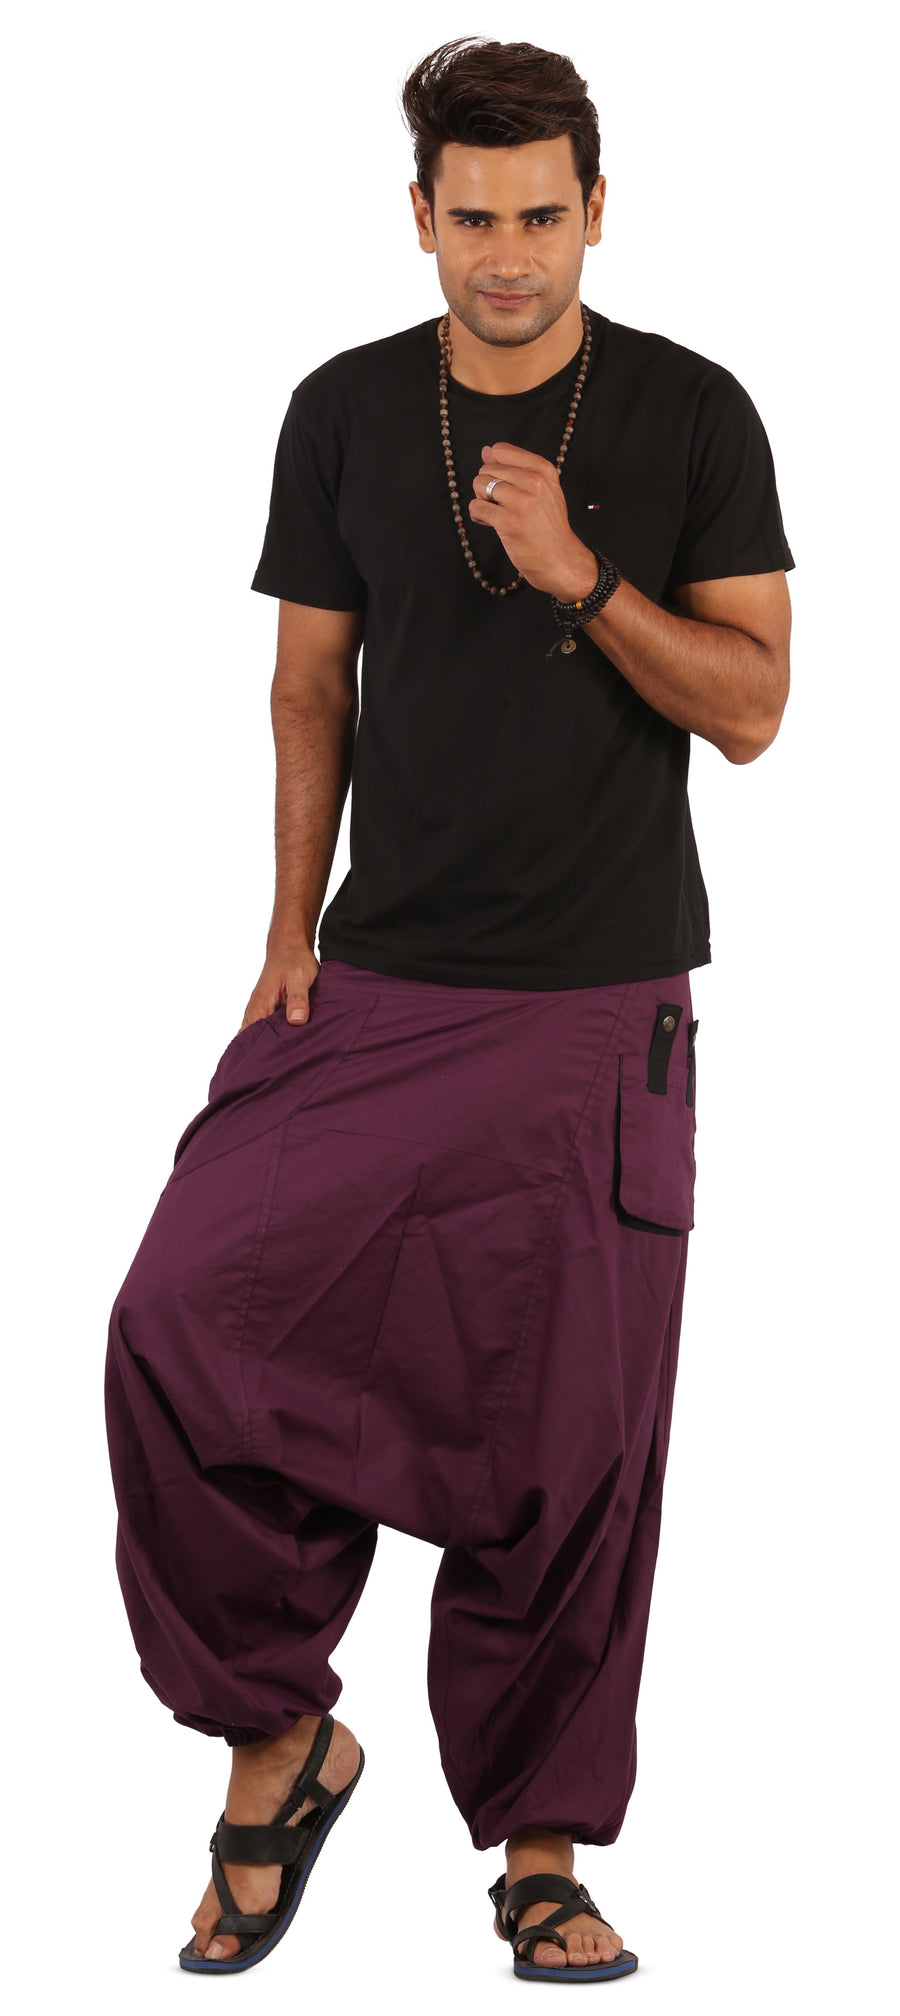 Harem Pants, Purple Harem Pants, Show me some Mens Harem Pants, Show me some Womens Harem Pants, What is a harem pant, Show me some baggy pants, I want to buy harem pants, comfy pants, travel pants, picnic pants, hiking pants, cool harem pants, Wide leg harem Pants, Cheap Harem Pants, Hippie Pants, Cotton Harem Pants, Show me best harem pants, Highly rated Harem Pants, Best Casual Pants